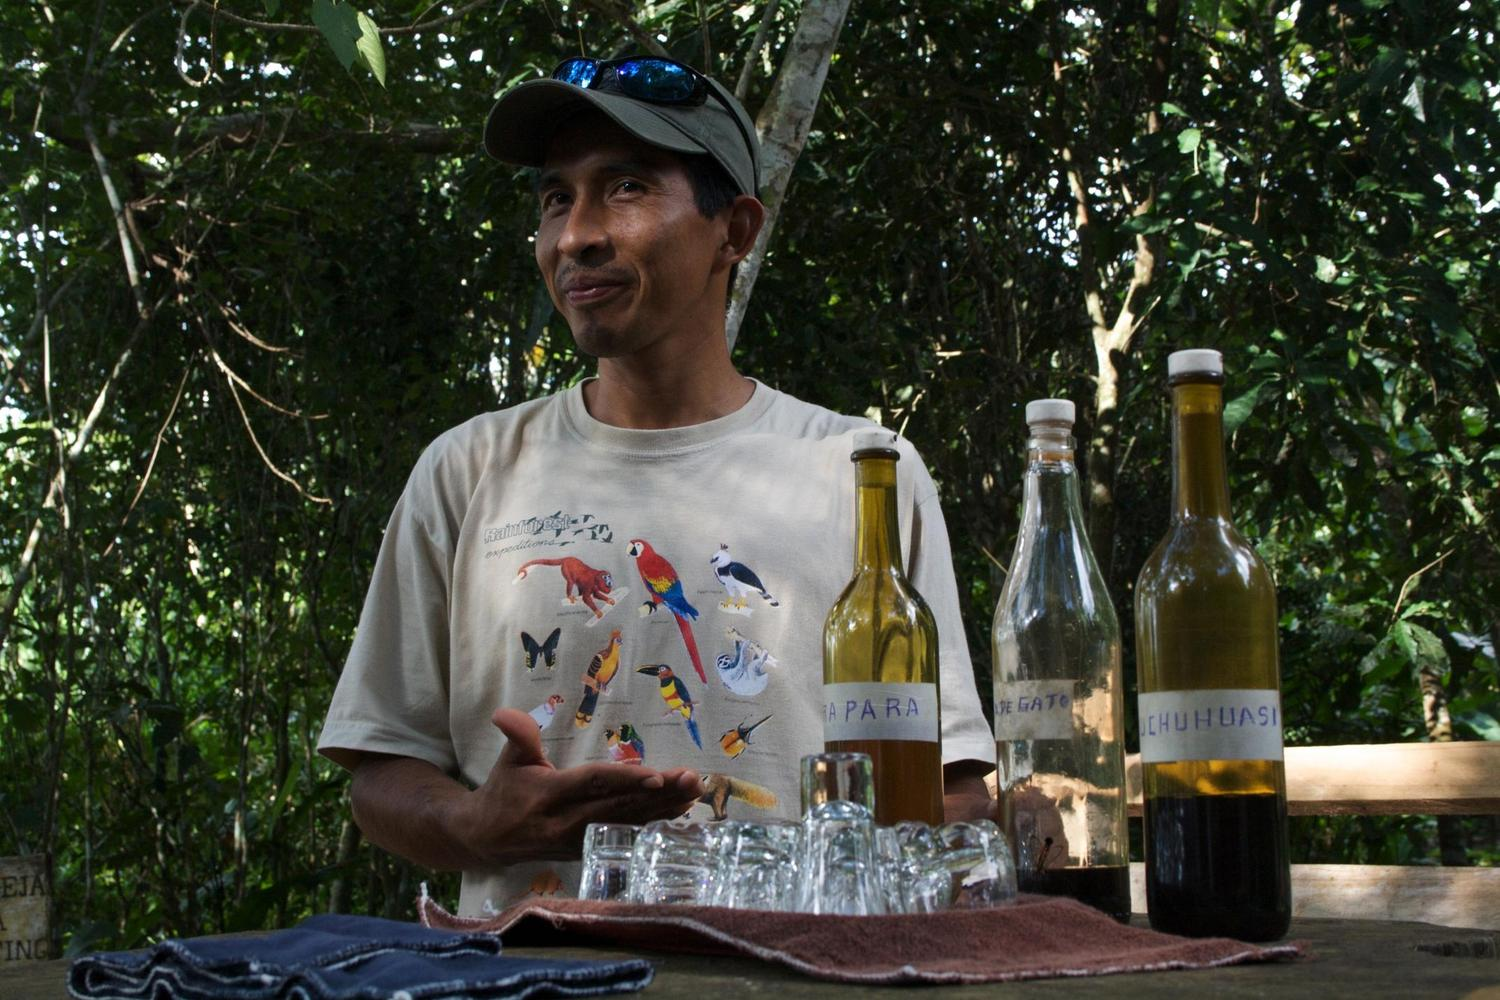 Tasting traditional potions in the Amazon